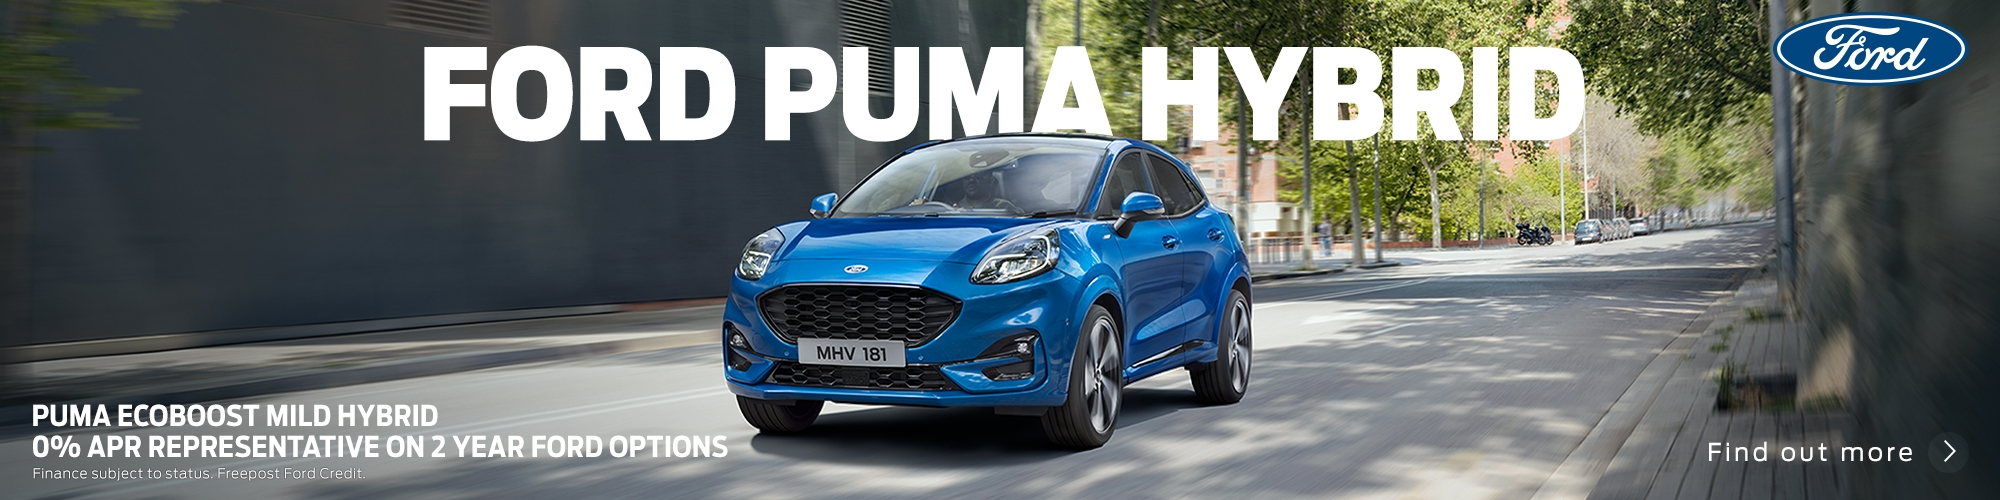 New Ford Puma Hybrid 0% APR